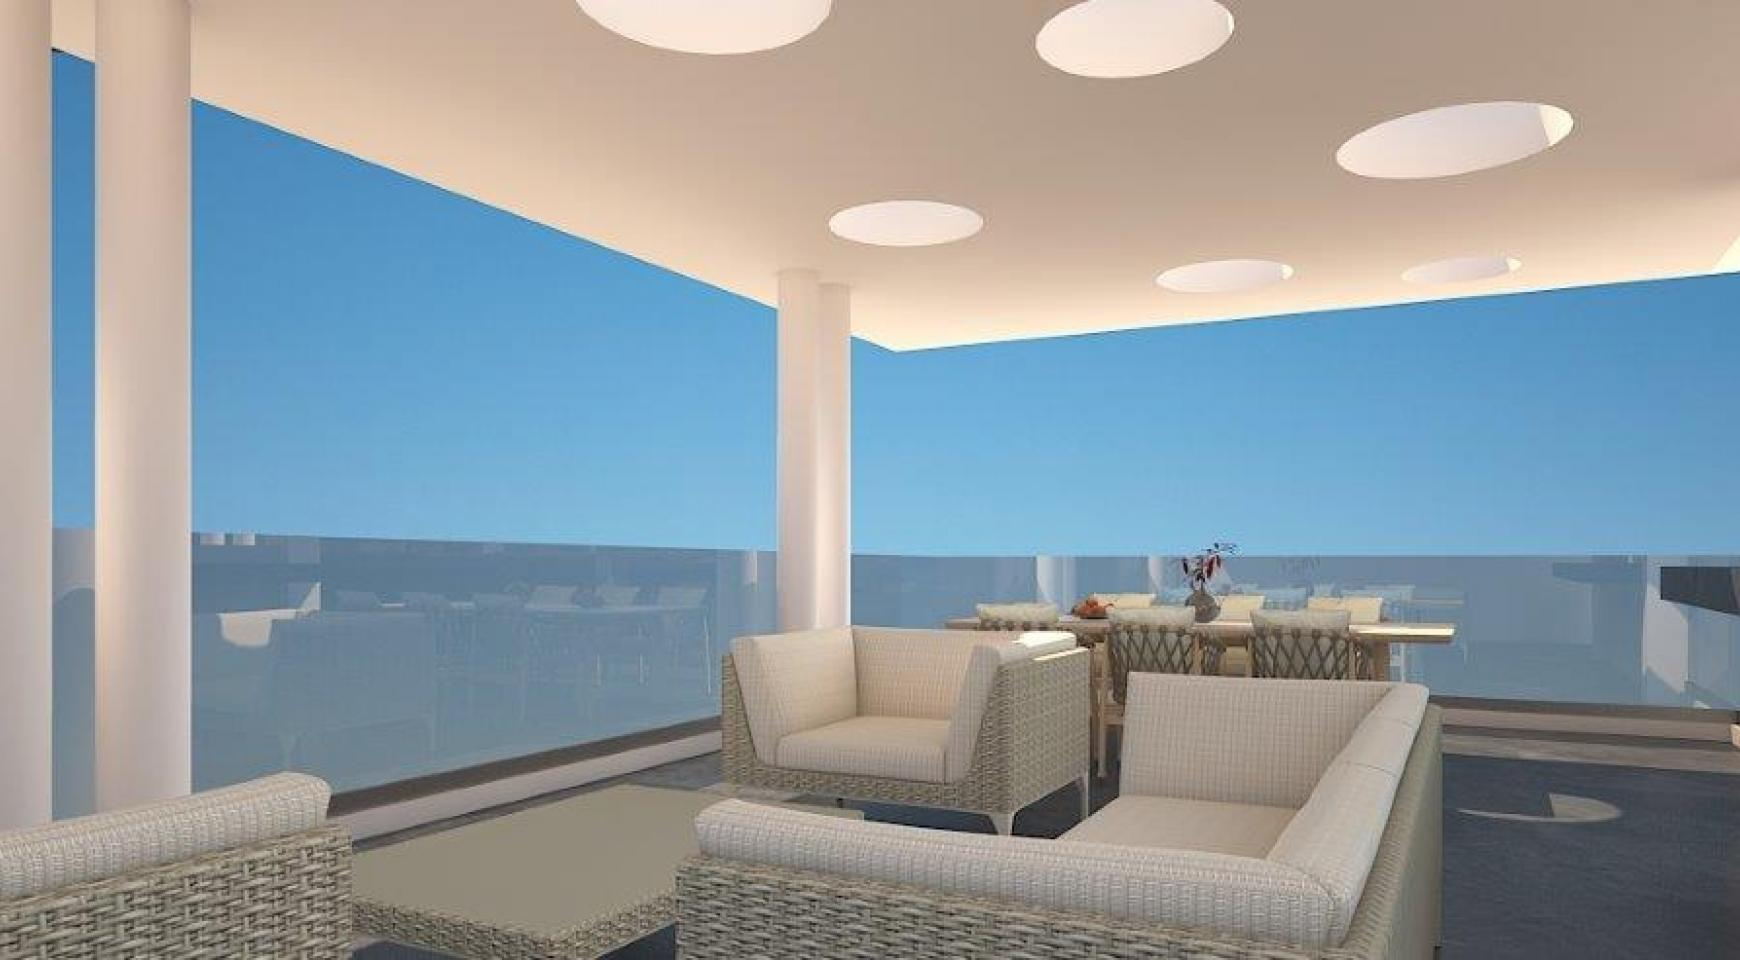 Modern 3 Bedroom Apartment in a New Complex in the City Centre - 2